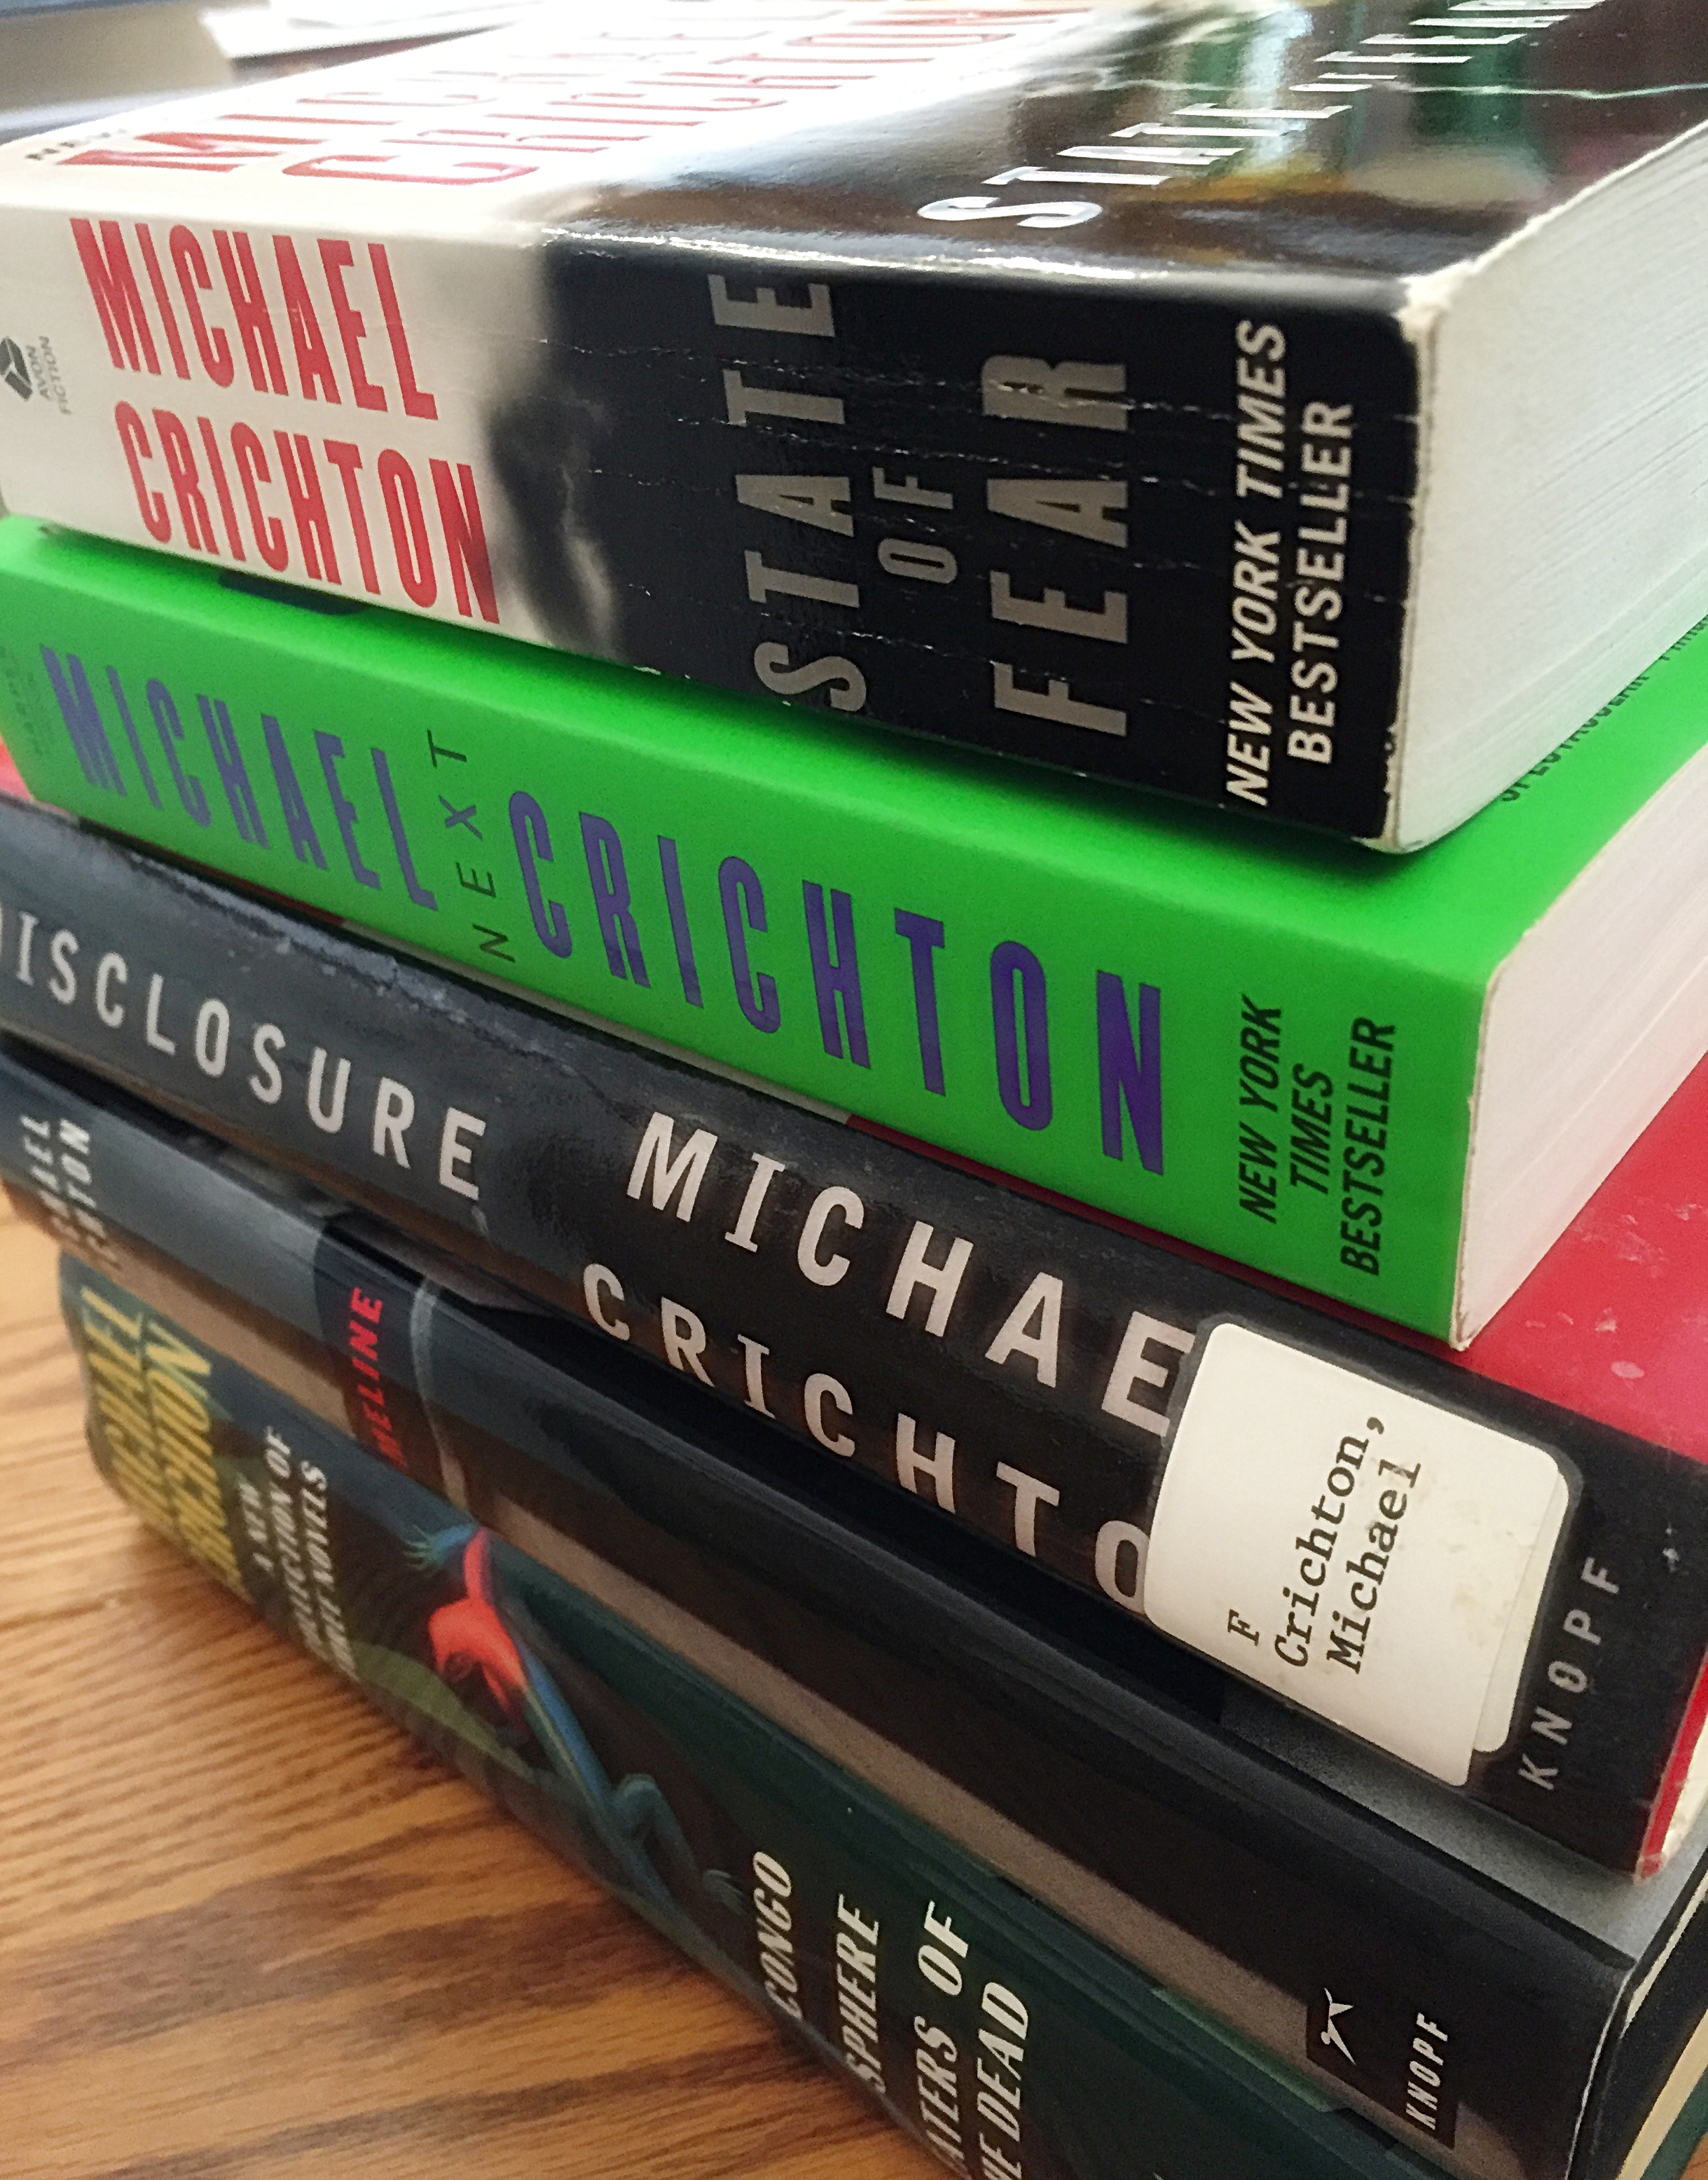 Michael Crichton originally began writing to pay his way through Harvard Medical School.